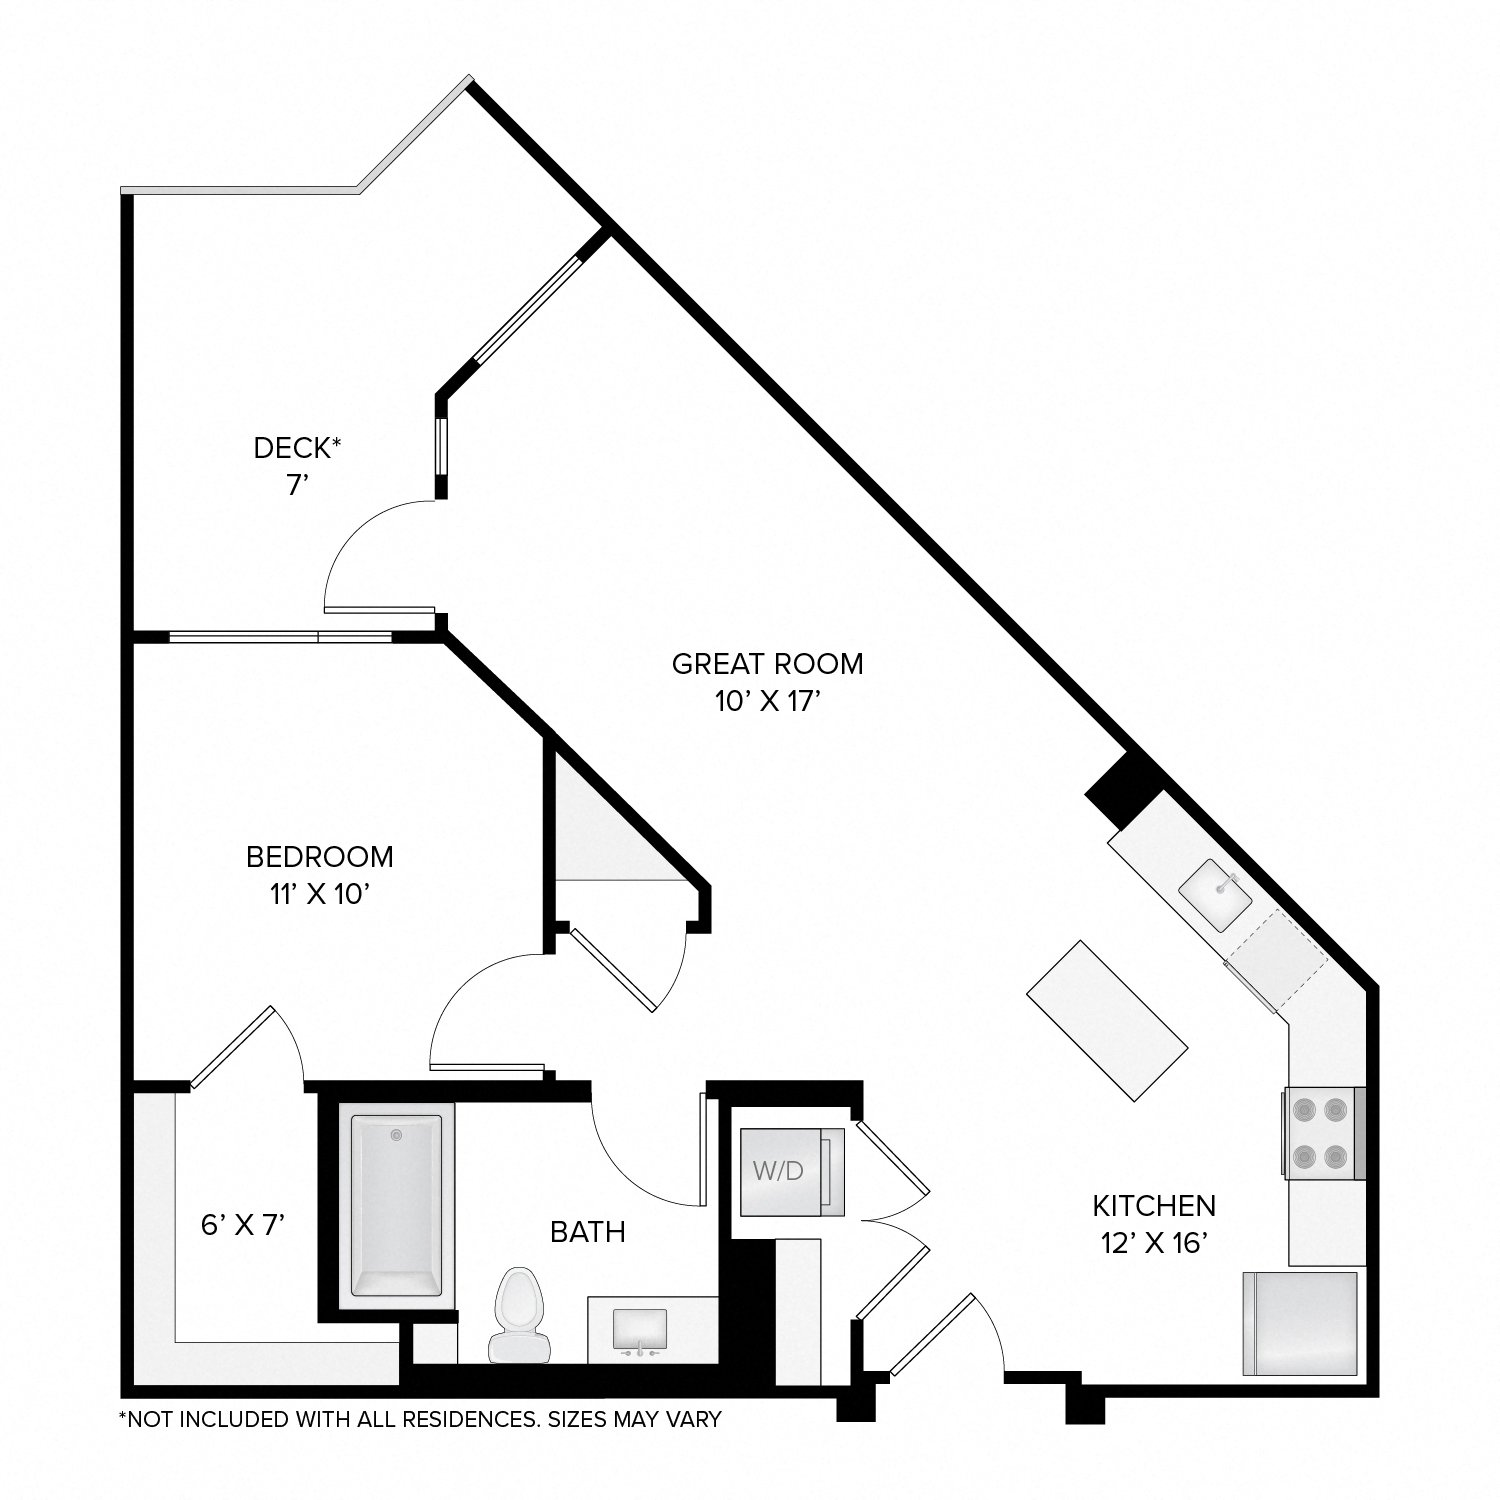 Diagram of the Jackson floor plan. One bedroom, one bathroom, an open kitchen and living area, a washer dryer, and in select residences, a deck.